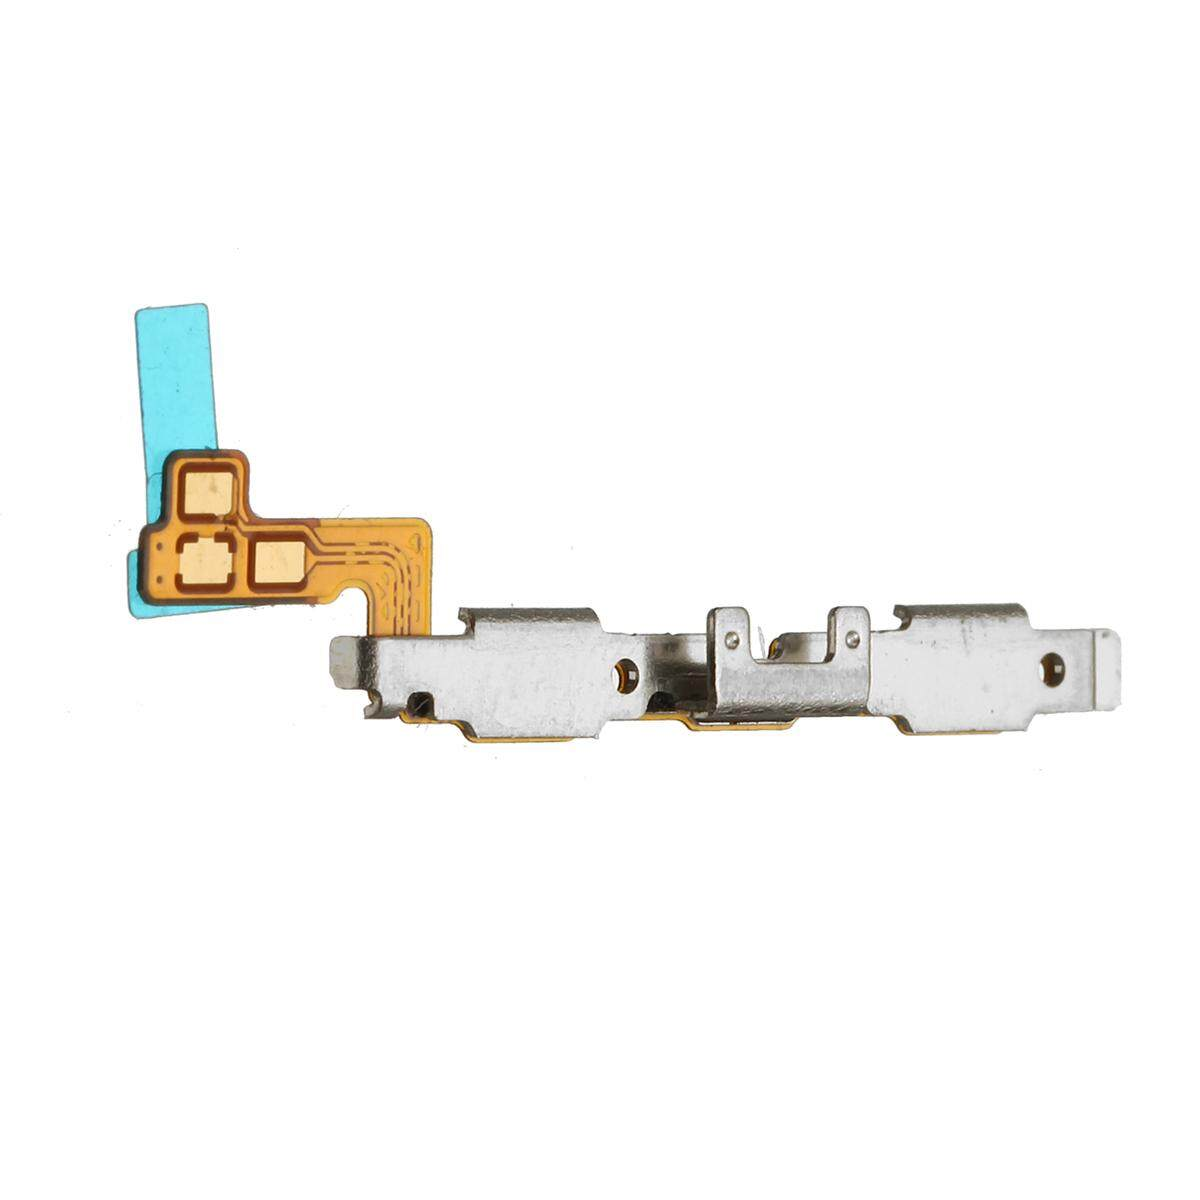 OEM Volume Key Button Flex Cable Fix For LG G5 LS992 US992 RS988 H860N H830 H850 - intl